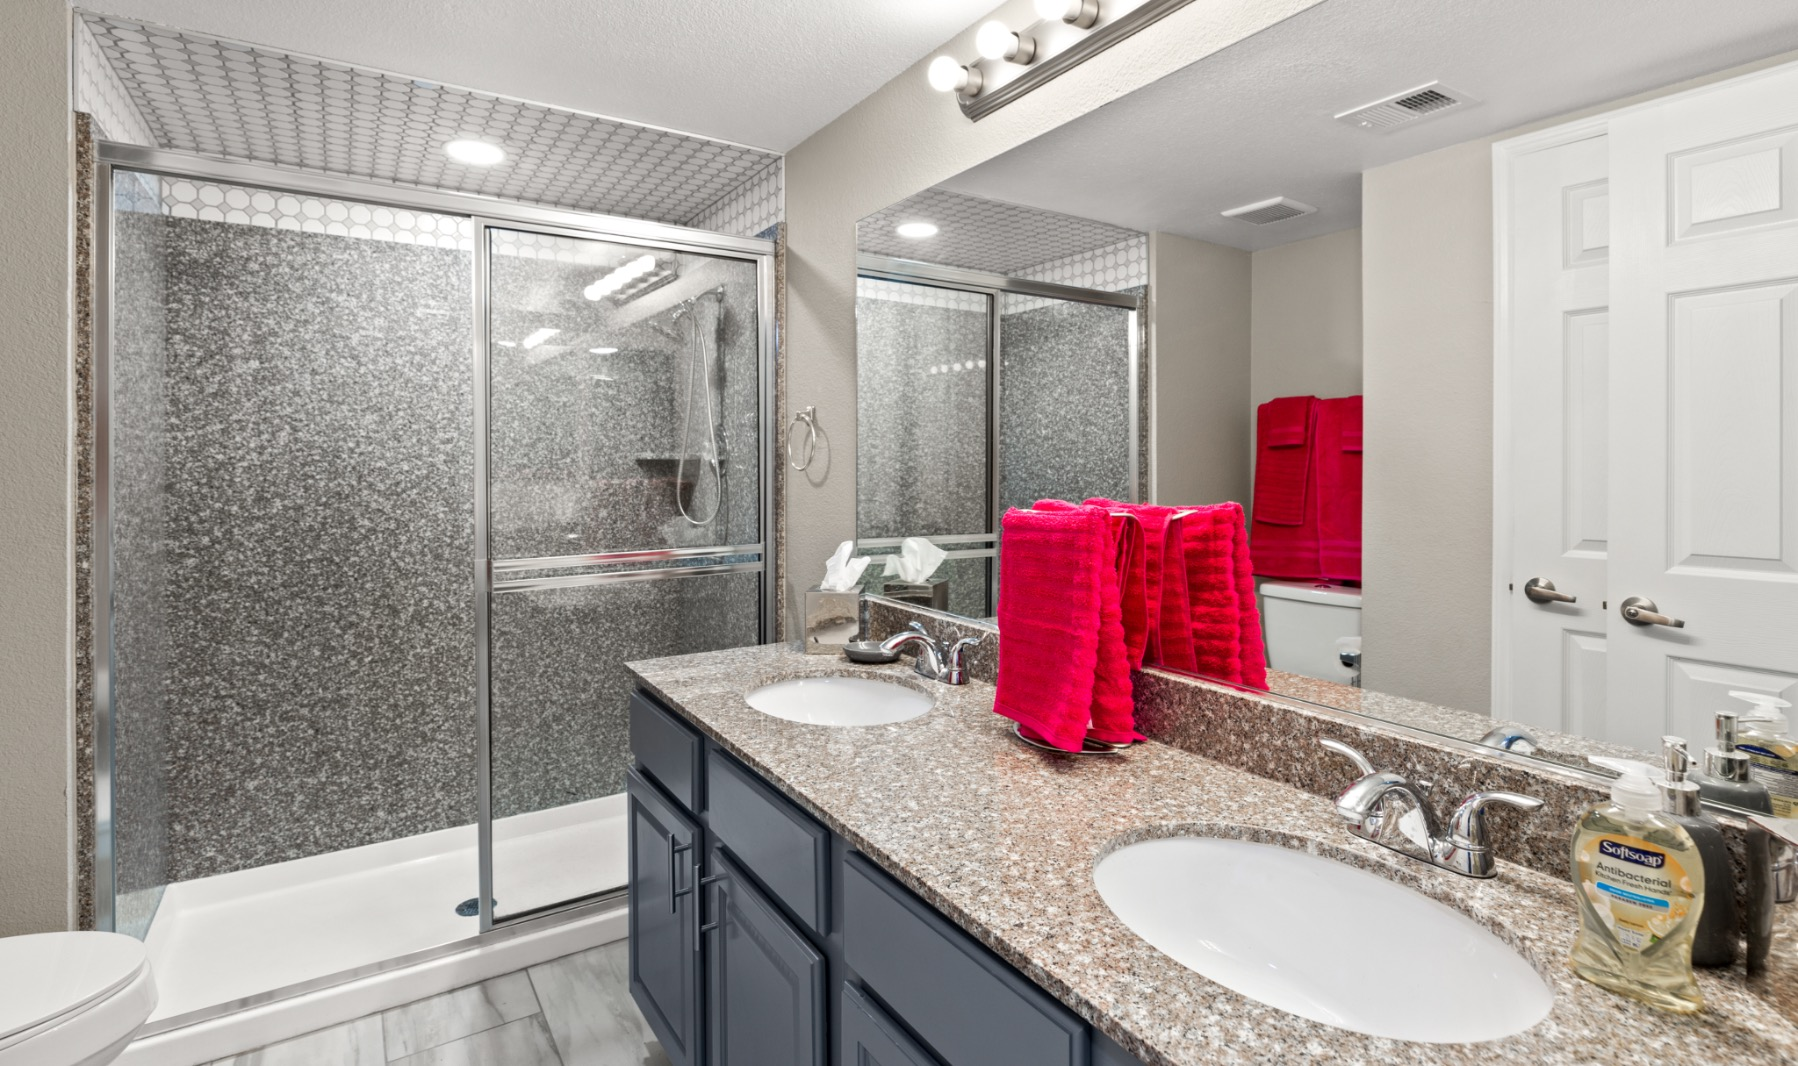 3512 Bluegill Way Unit D | Image Title